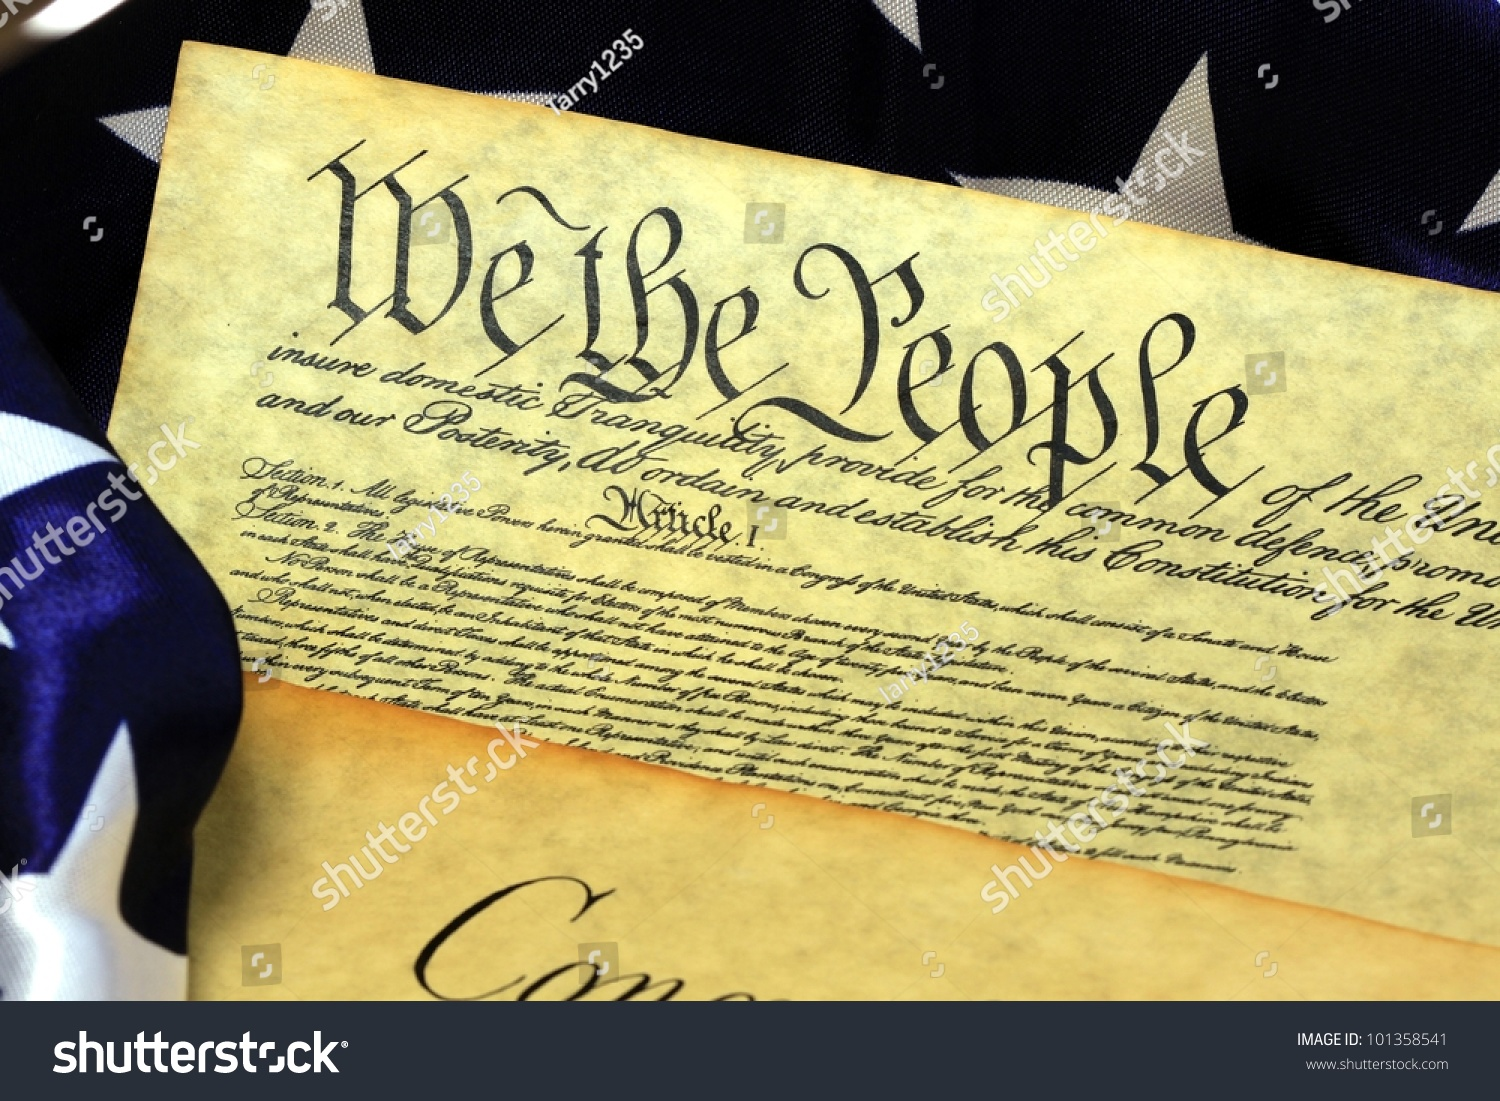 american democracy the preamble of the In a constitutional democracy the authority of the majority is limited by legal and institutional means so that the rights of individuals and minorities are respected.